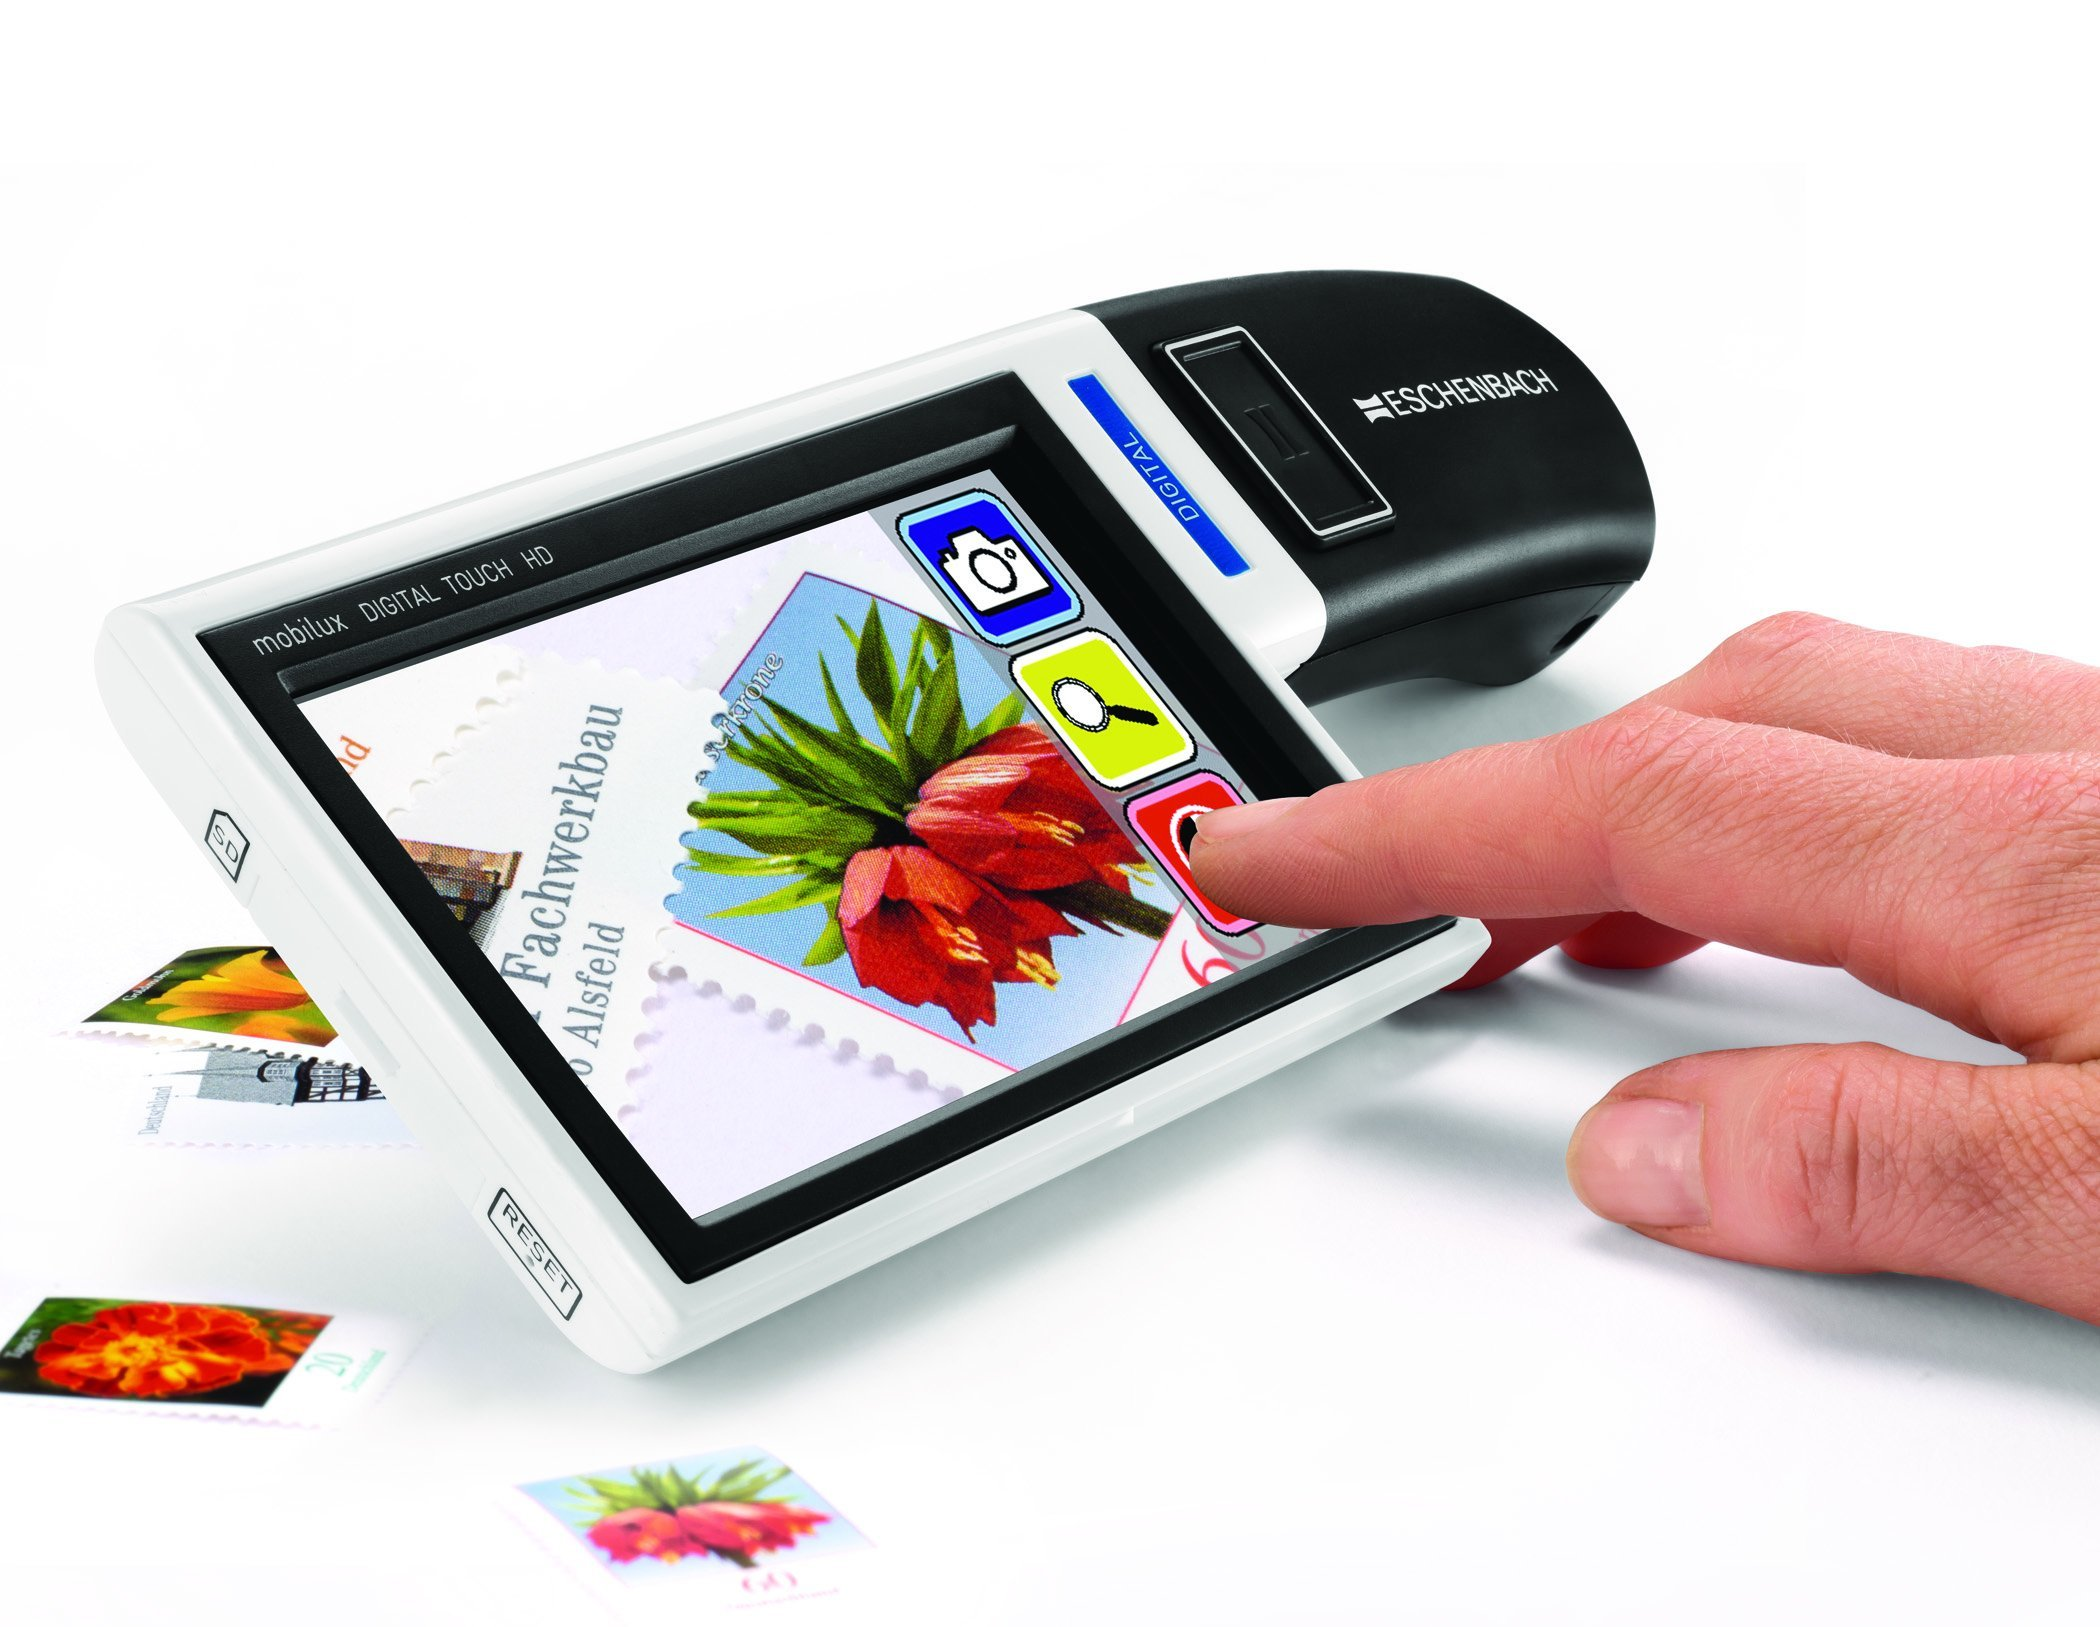 Mobilux Digital Touch HD